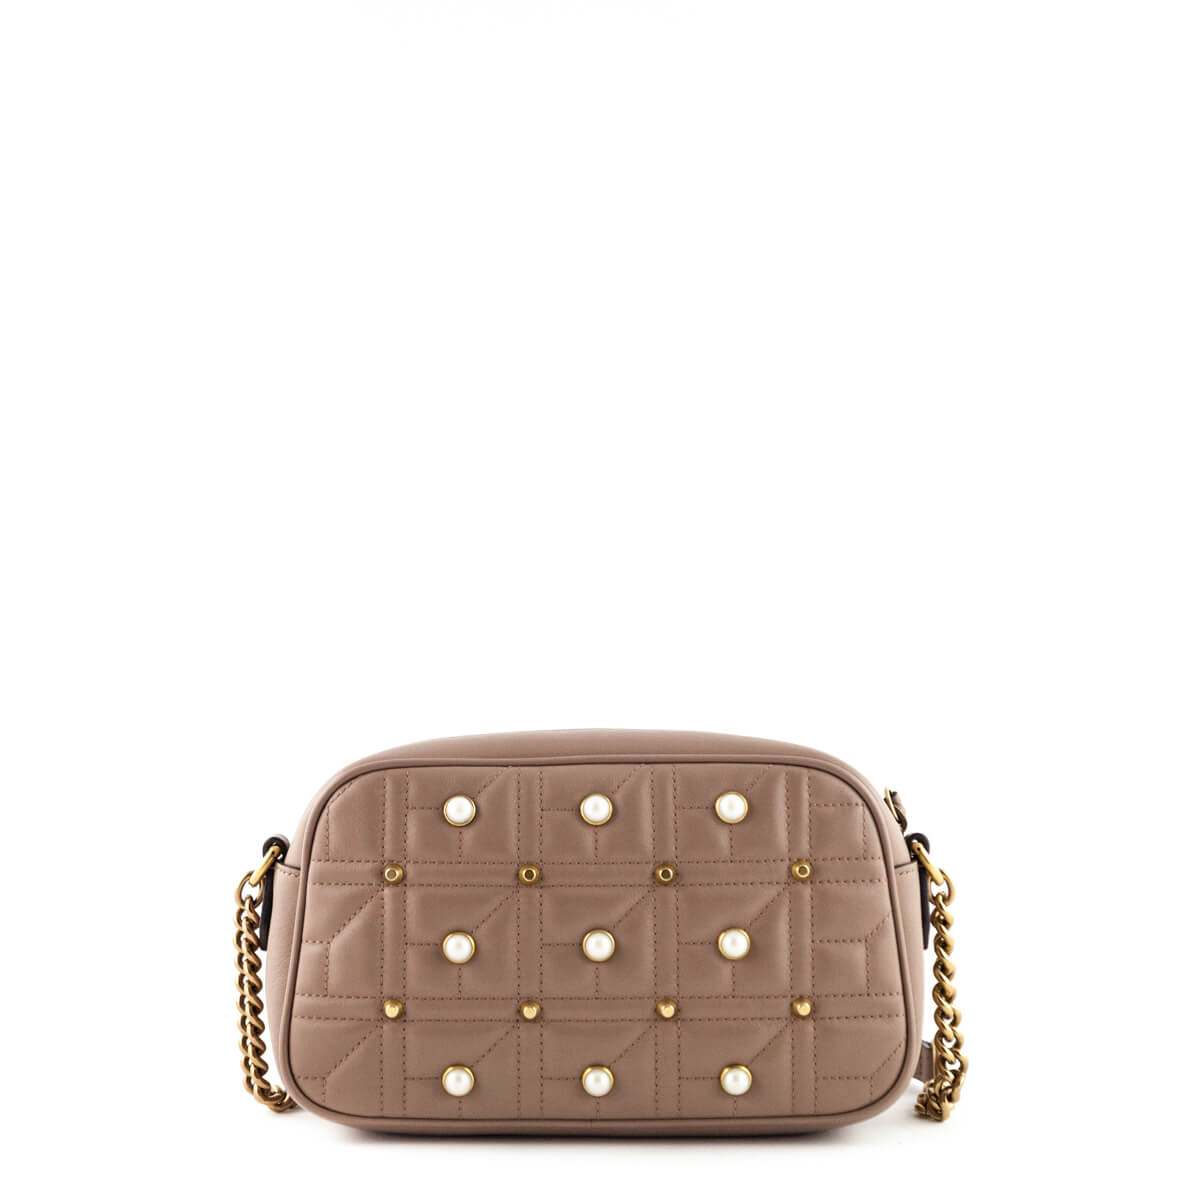 ... Gucci Nude Calfskin Matelasse Small Pearl Studded GG Marmont - LOVE  that BAG - Preowned Authentic ...